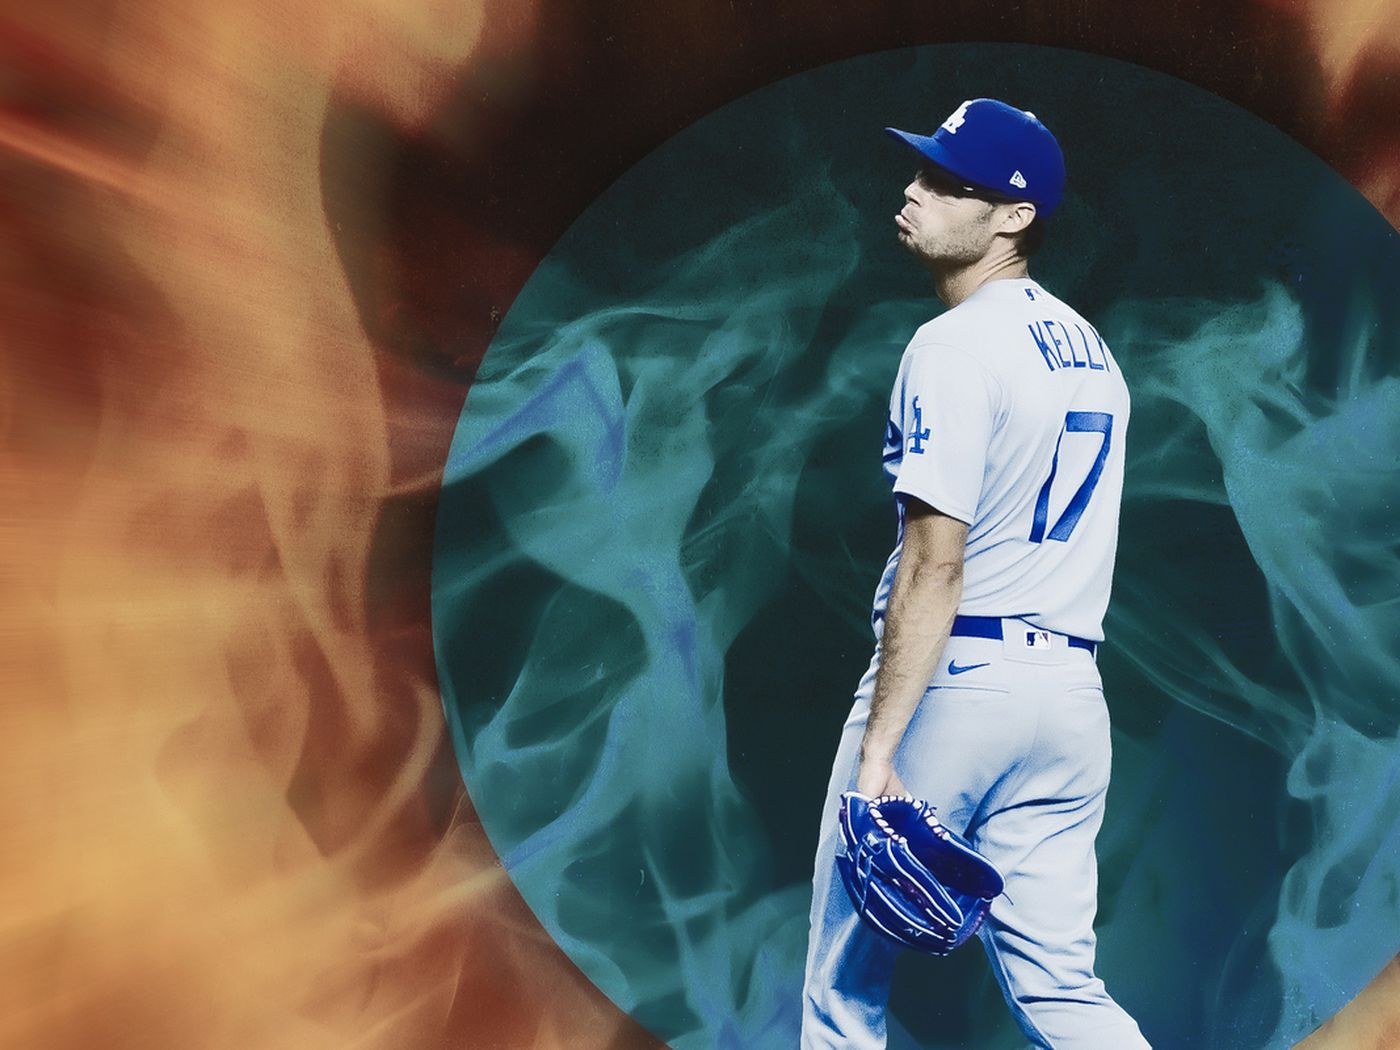 Joe Kelly Earned All Eight Games Of His Head Hunting Suspension The Ringer